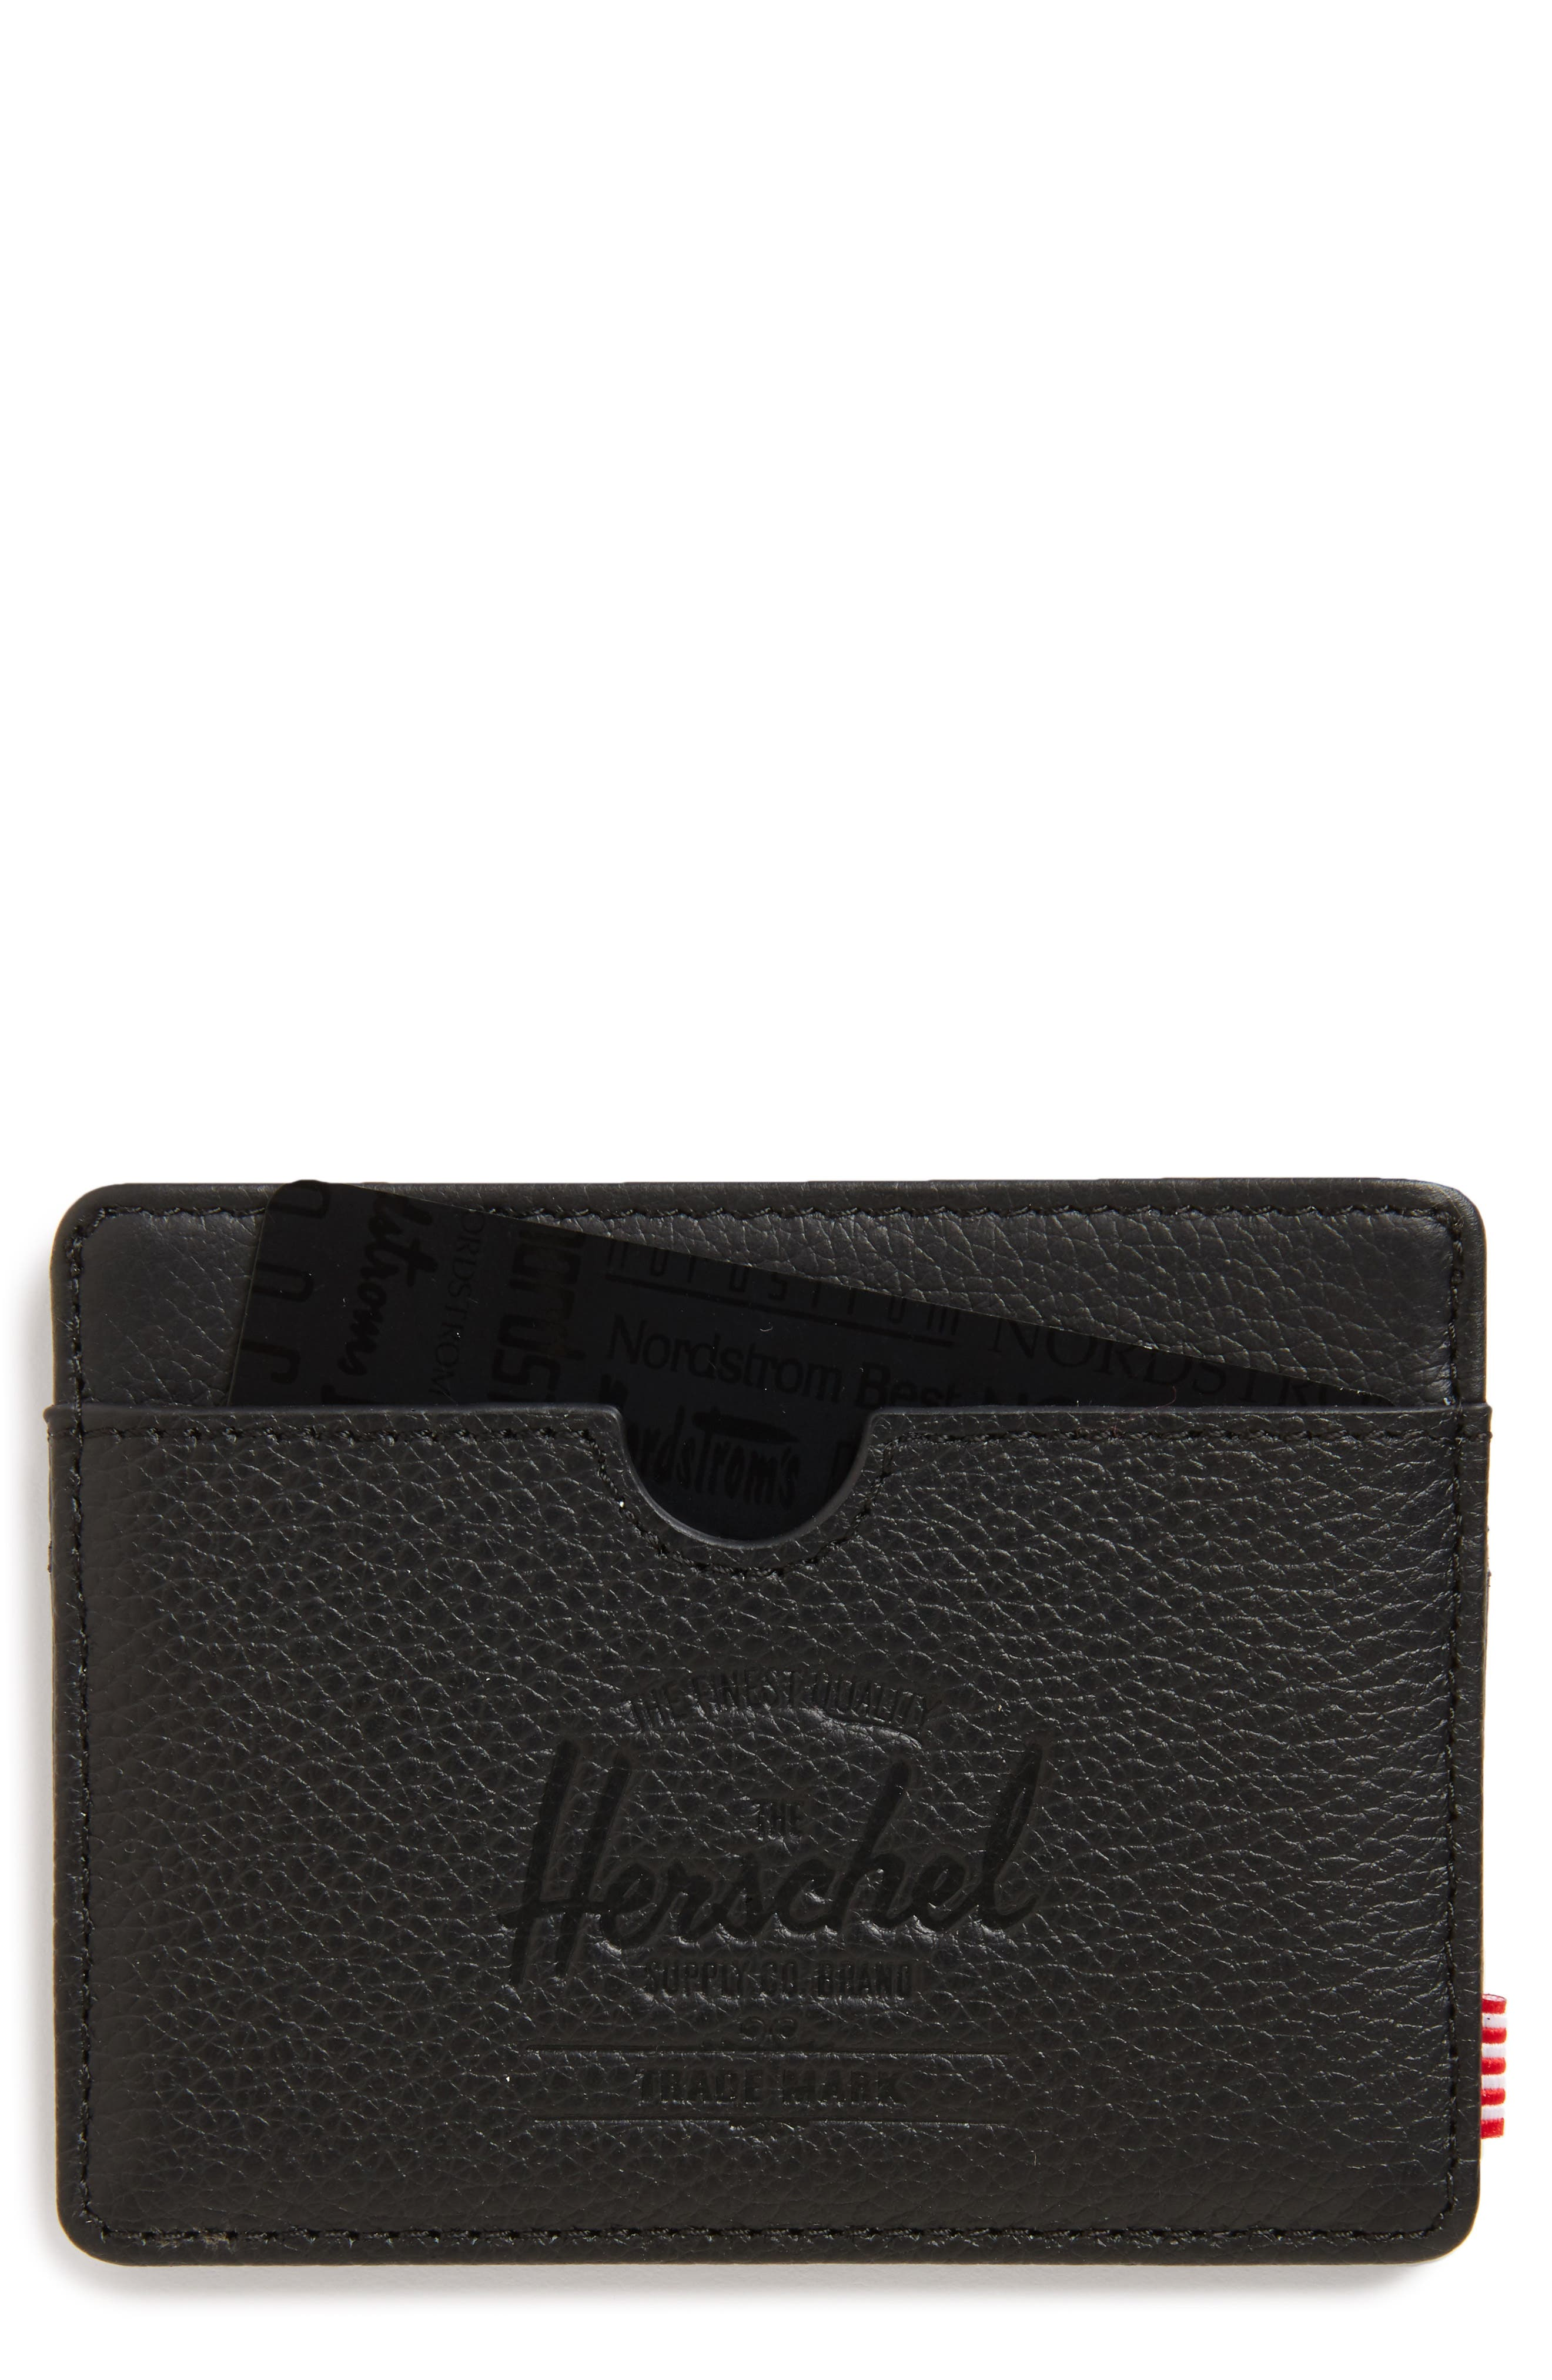 Alternate Image 1 Selected - Herschel Supply Co. Charlie Leather Card Case